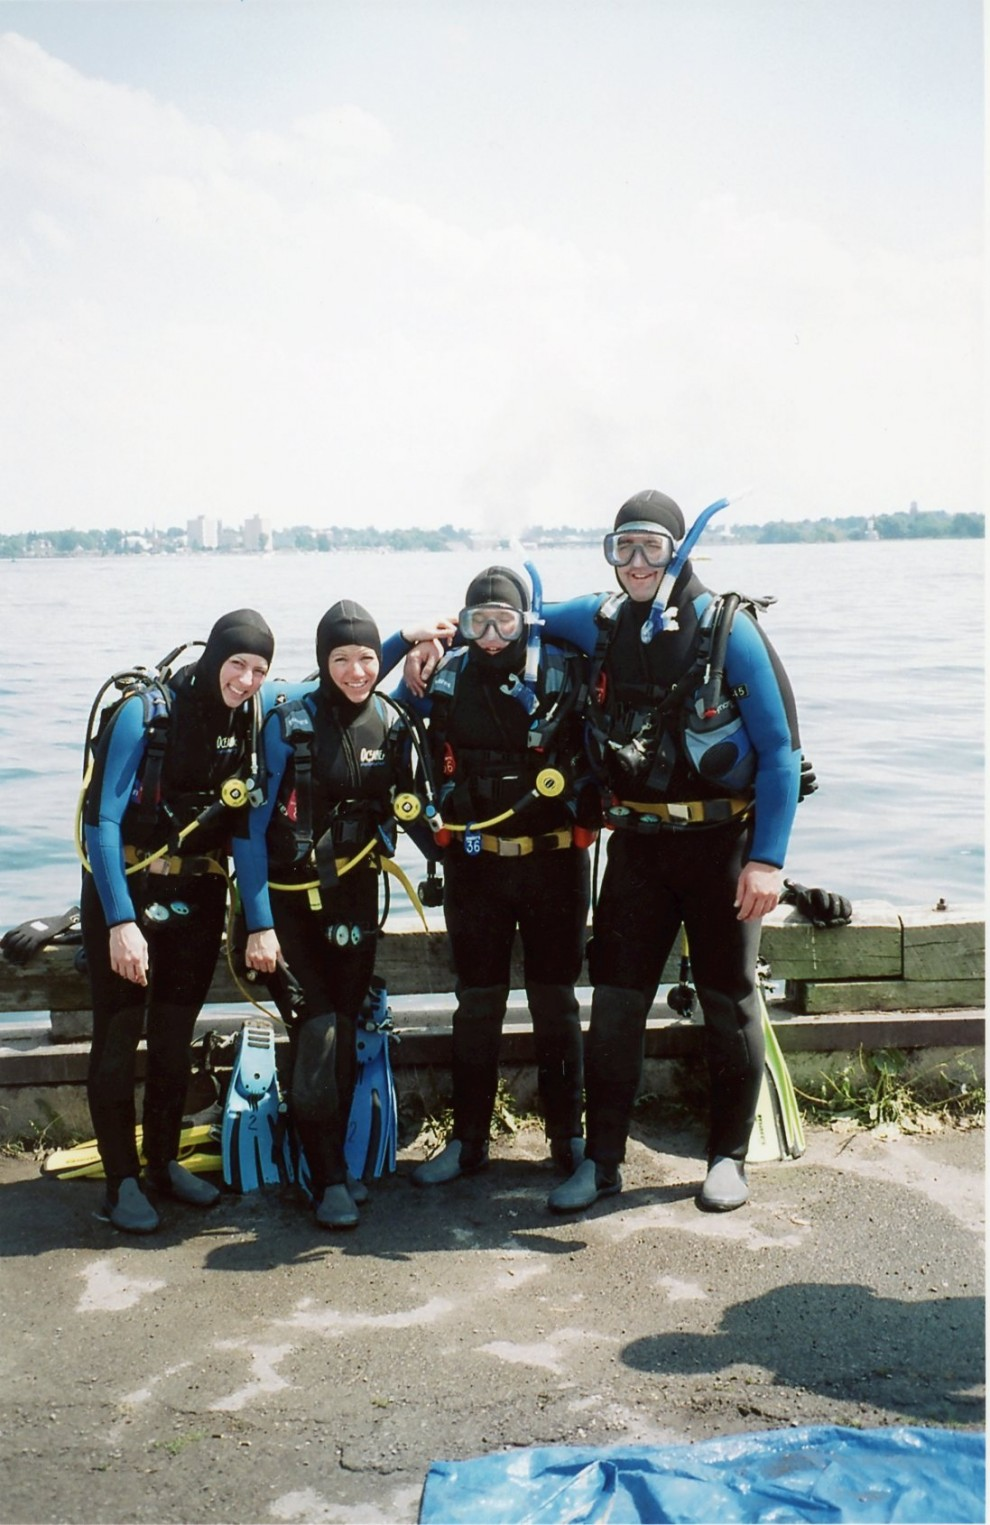 Getting ready to scuba dive at the Prescott docks on the Saint Lawrence River